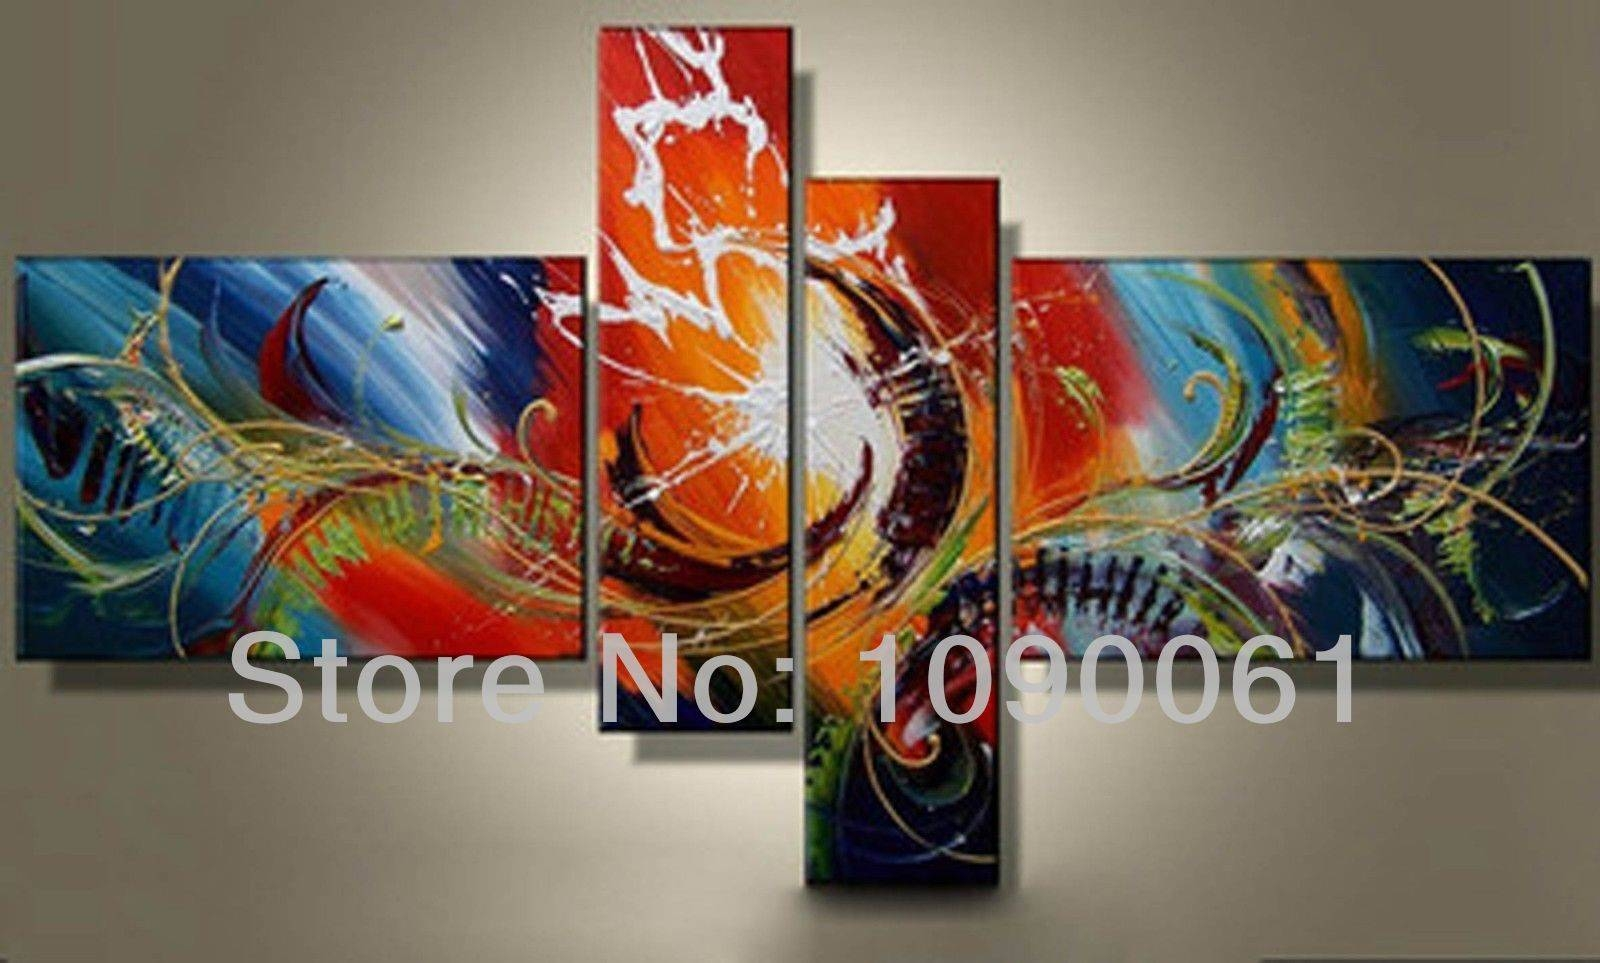 4 Piece Modern Abstract Red Black White Wall Art Decor Picture Intended For Most Popular 4 Piece Wall Art Sets (Gallery 12 of 20)